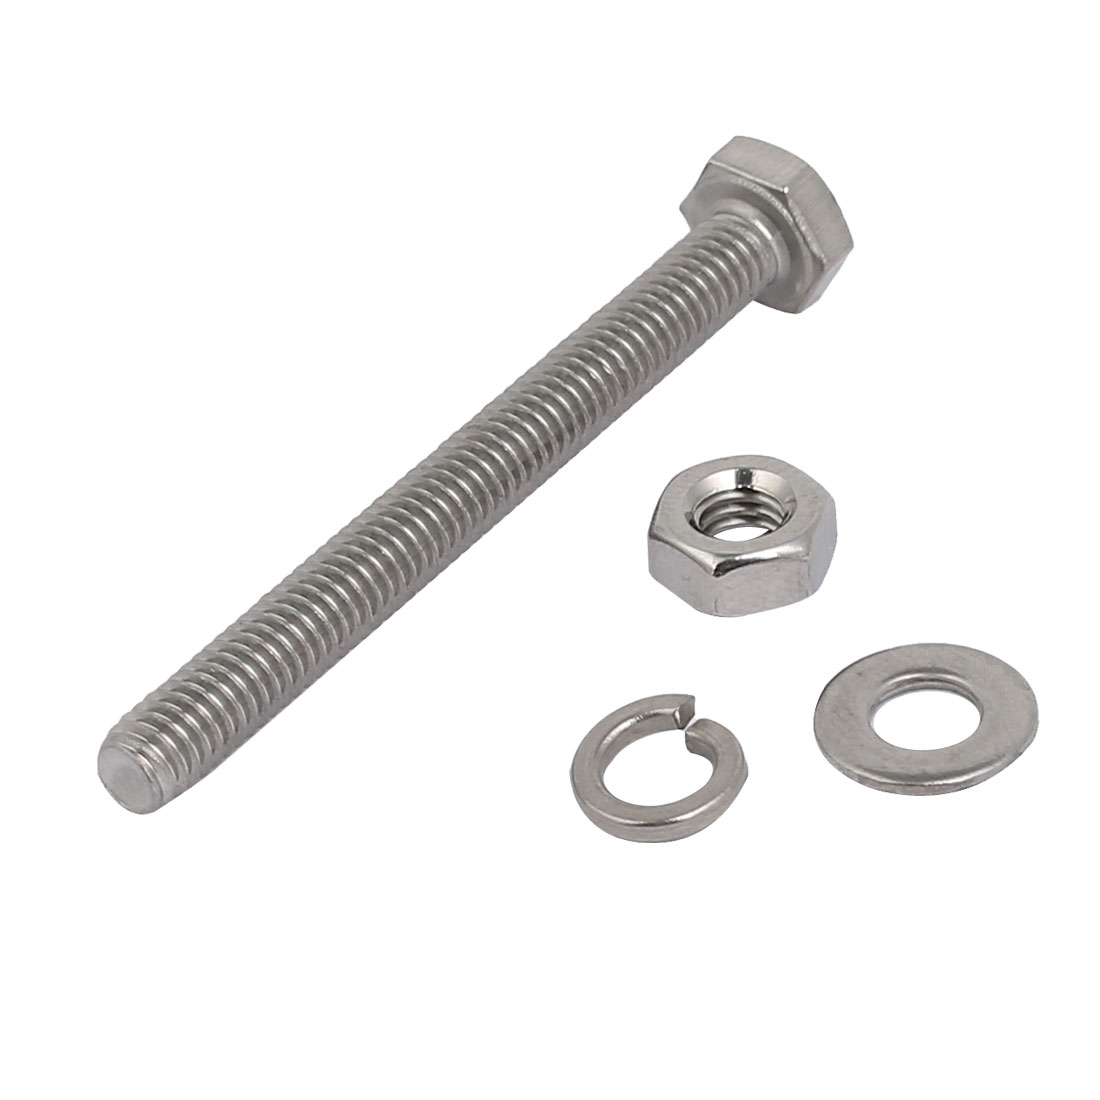 Unique Bargains 10pcs 304 Stainless Steel M4x40mm Hex Bolts w Nuts and Washers Assortment Kit - image 2 of 3